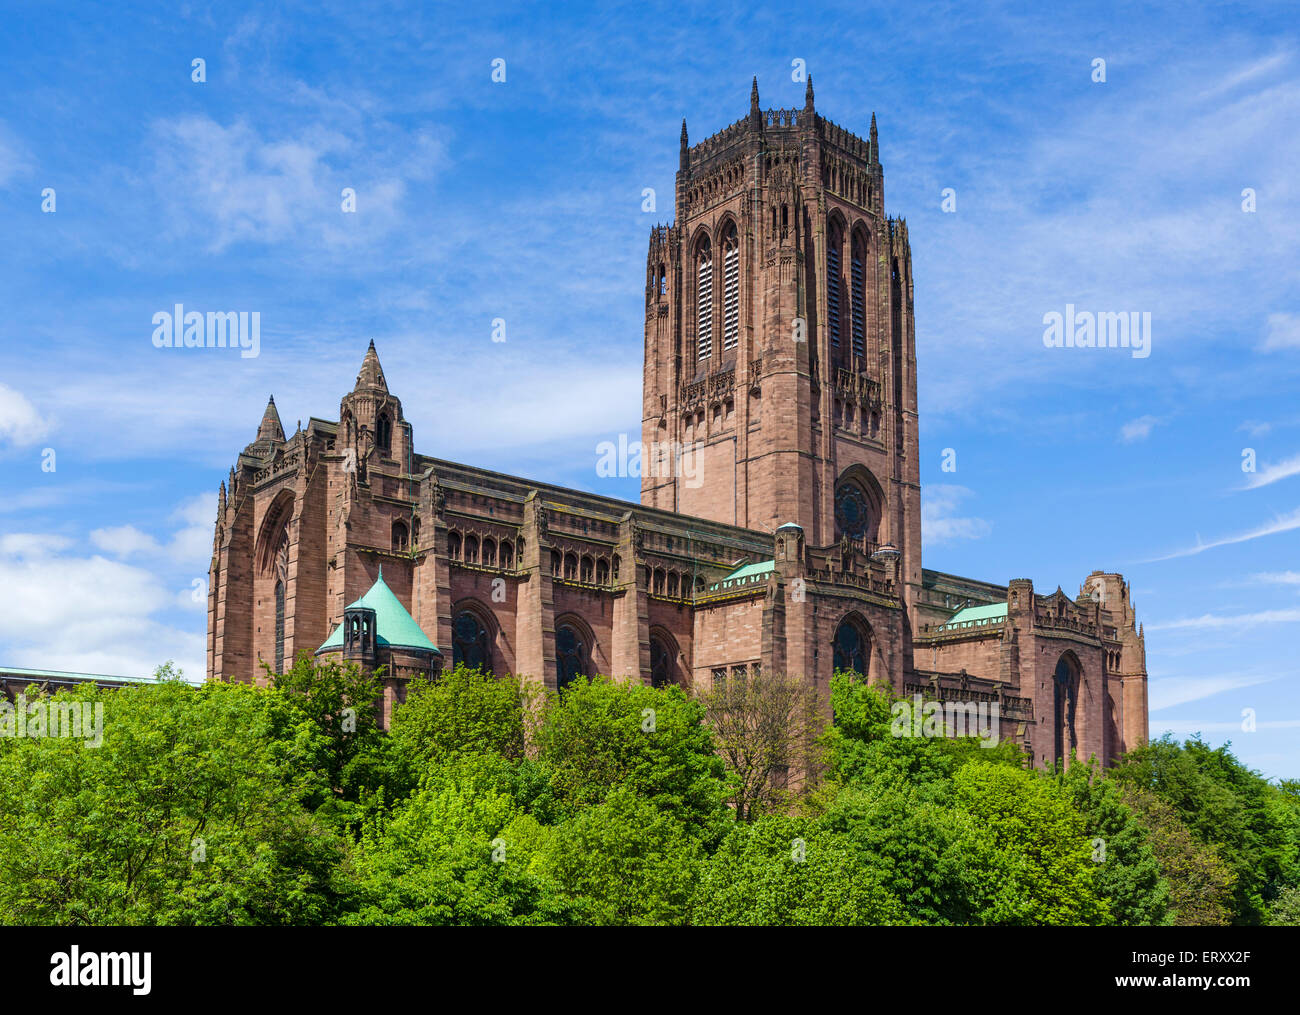 Liverpool Anglican Cathedral, Liverpool, Merseyside, England, UK - Stock Image